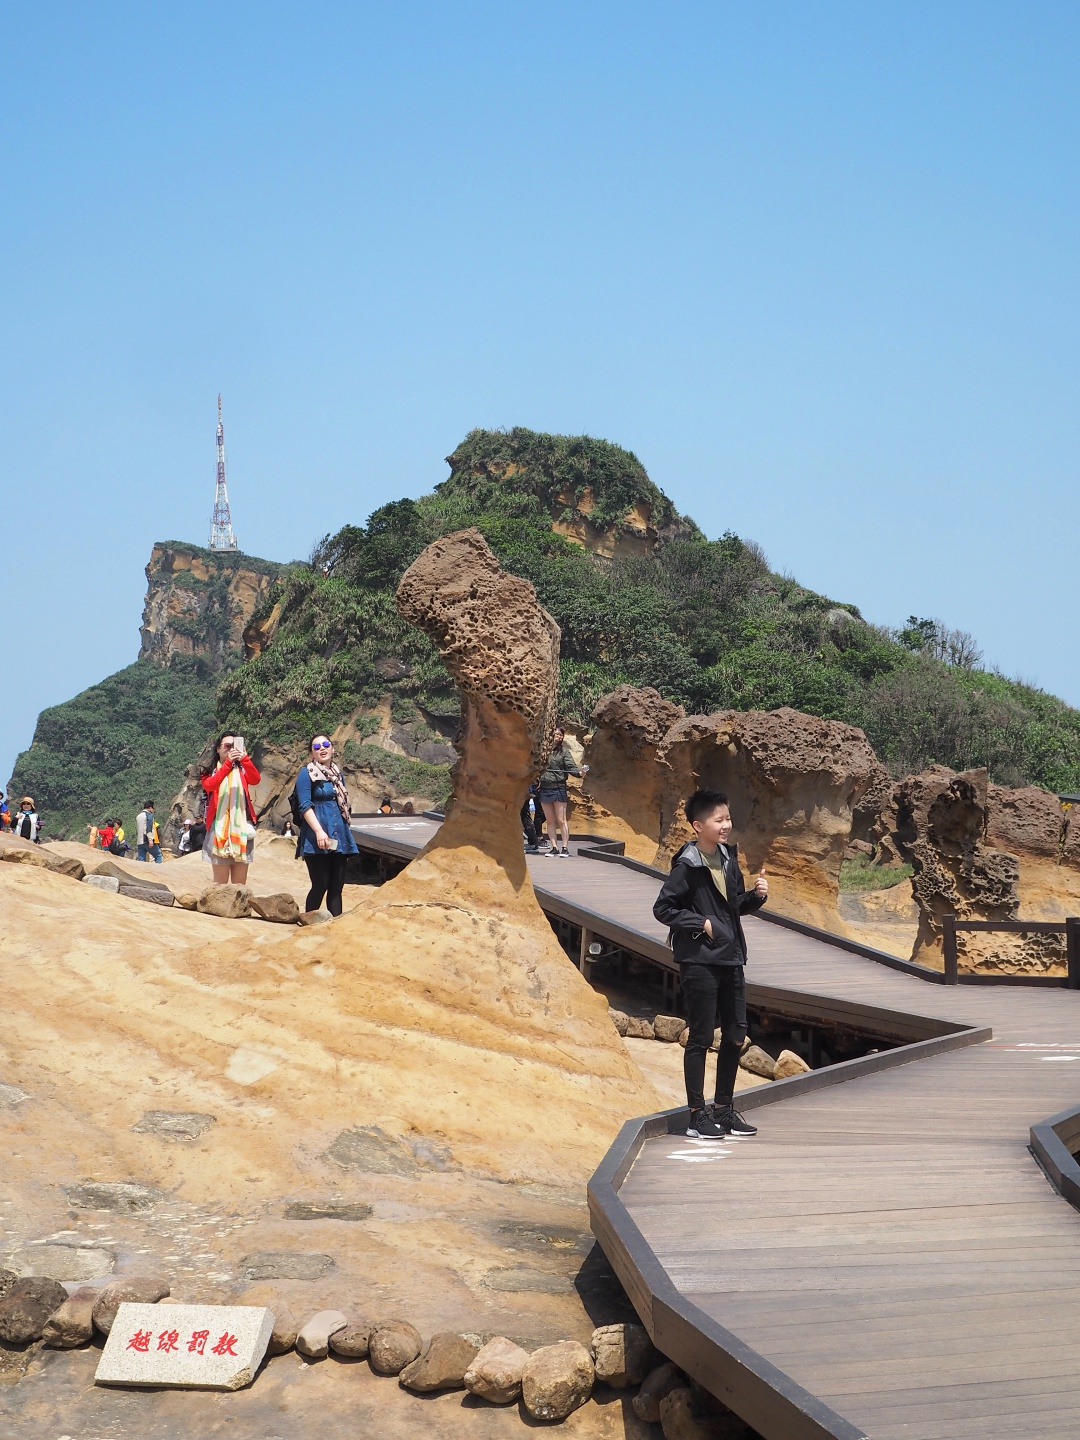 Taiwan Yehliu Geopark 野柳地质公园 Queen's Head Rock | joanne-khoo.com